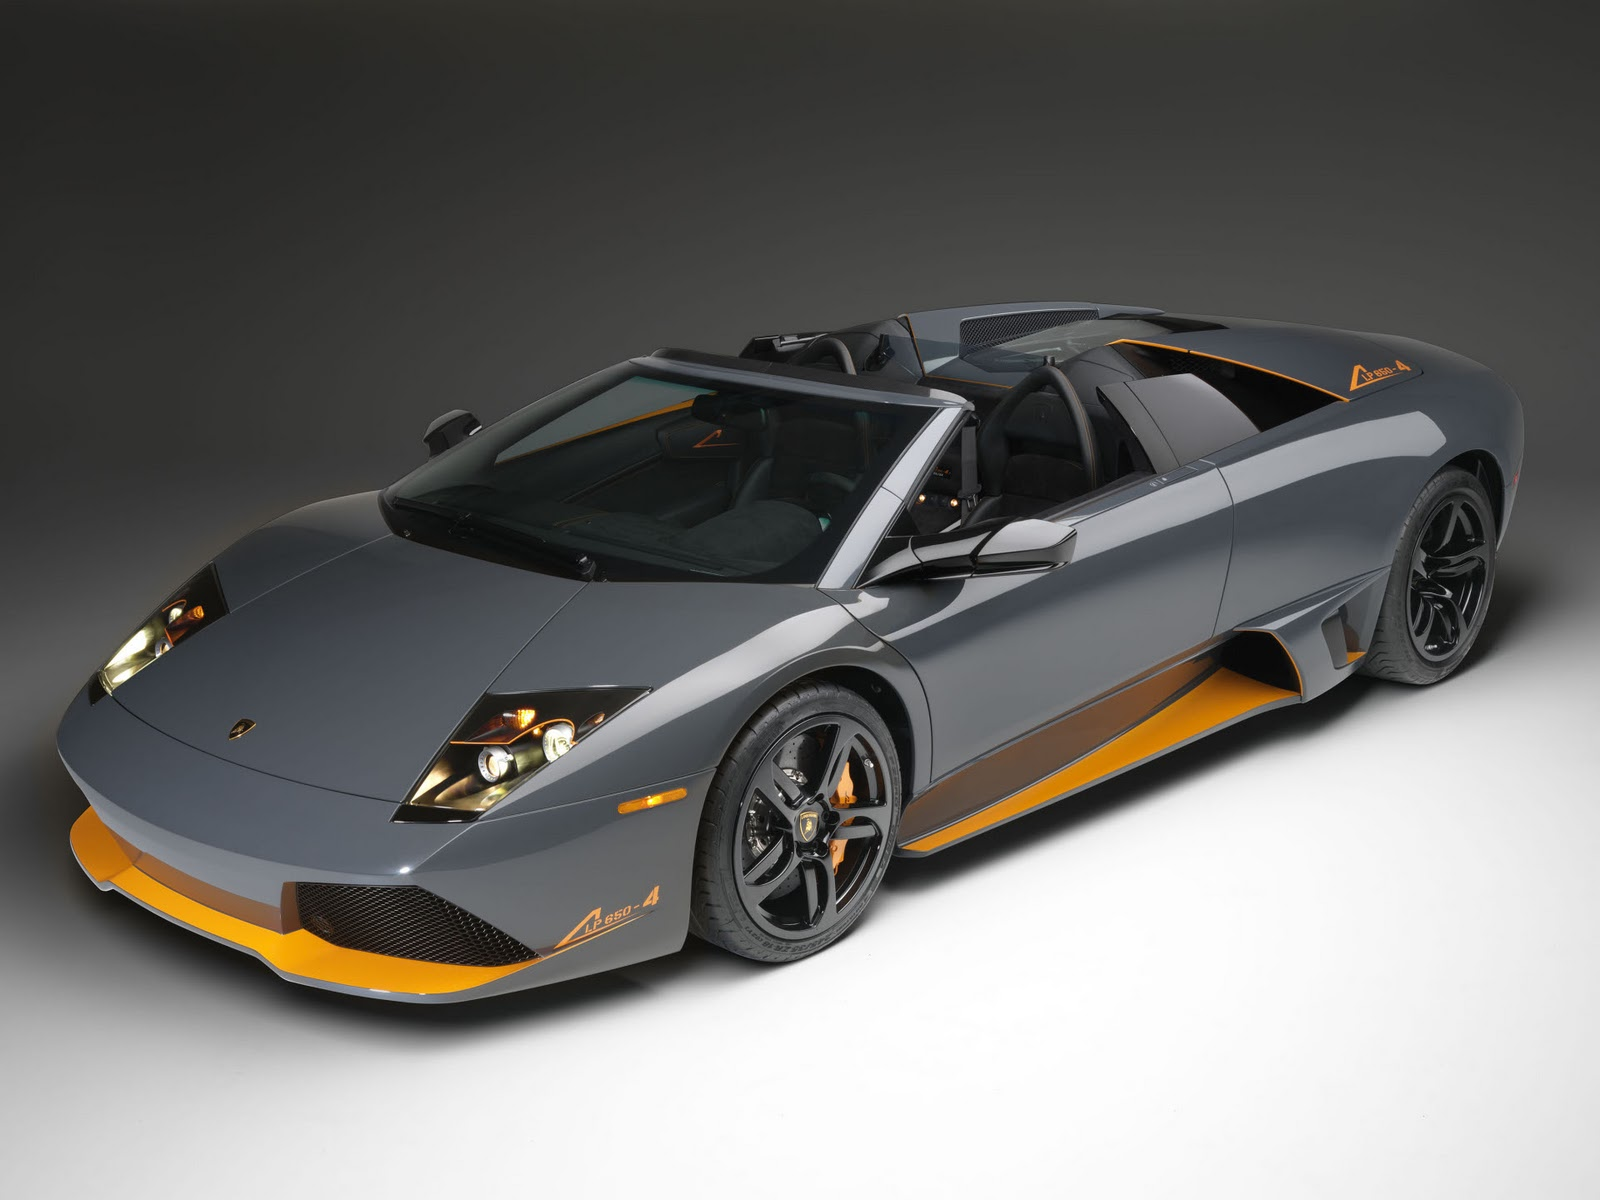 lamborghini murcielago wallpaper | Cool Car Wallpapers